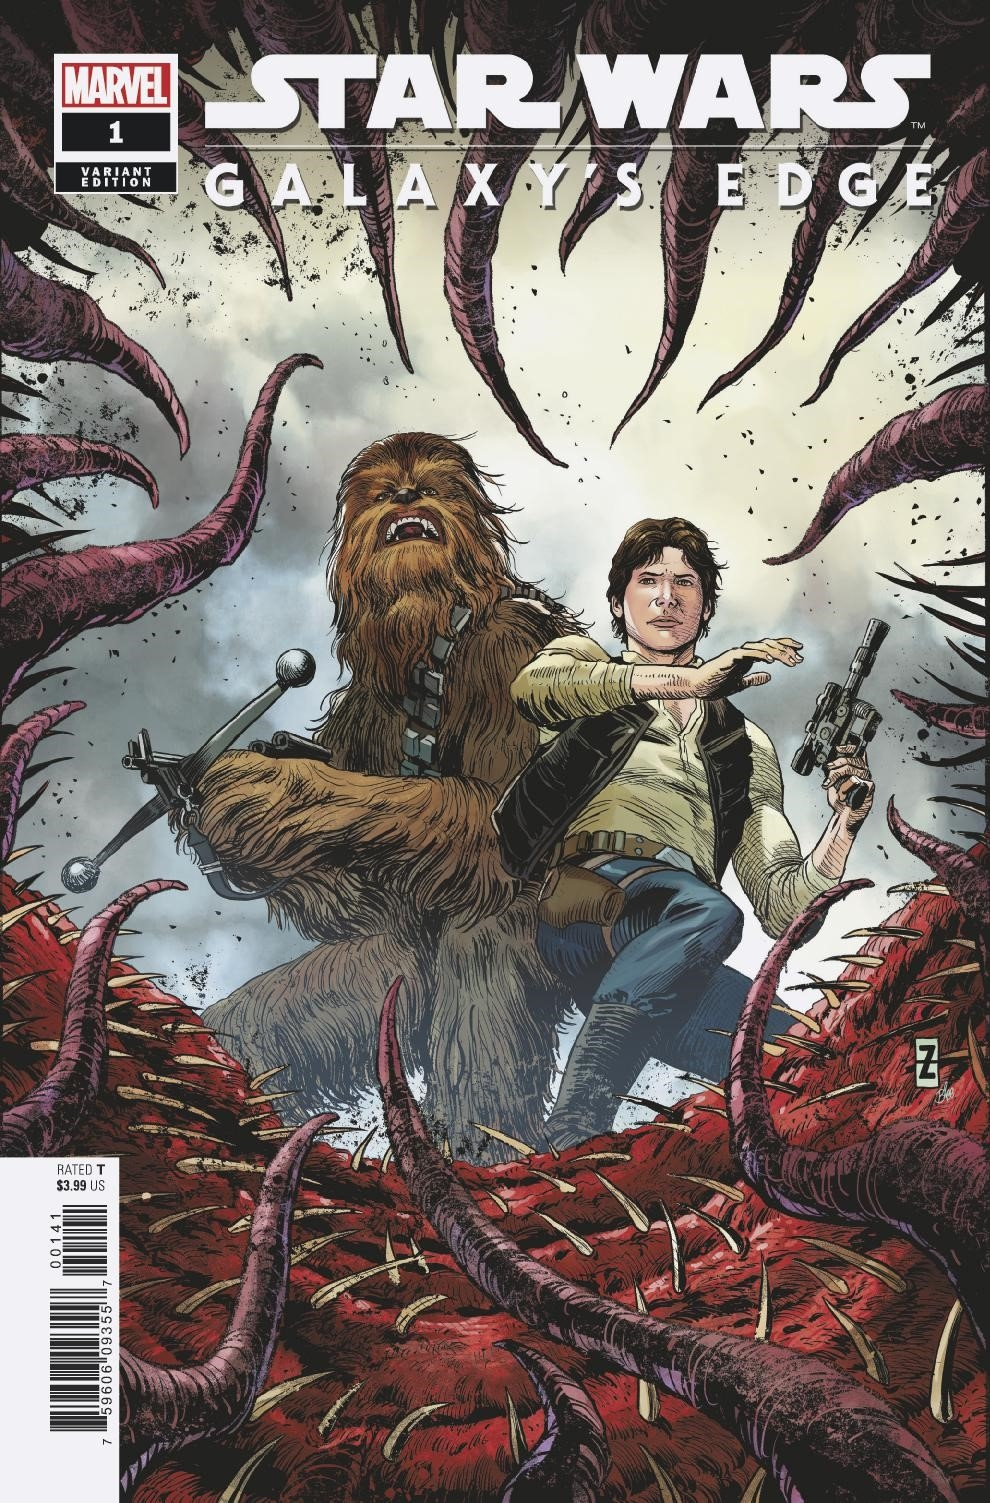 STAR WARS GALAXYS EDGE #1 (OF 5) ZIRCHER VAR